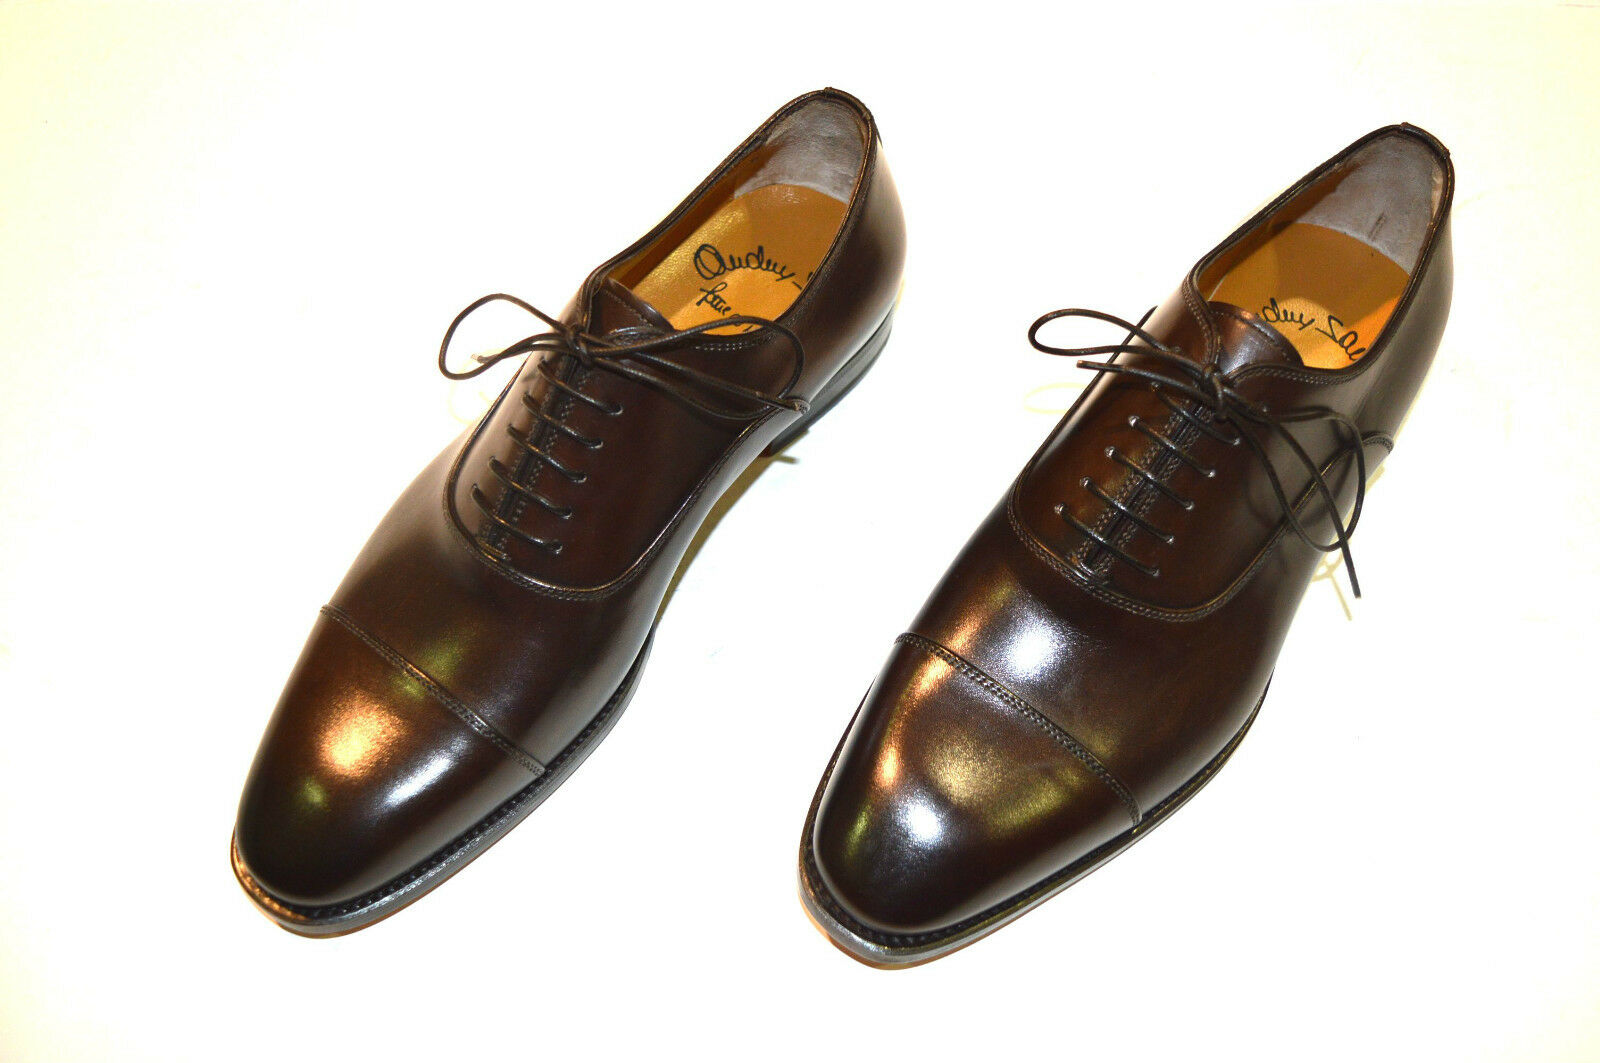 NEW SANTONI Dress Brown Leather shoes  SIZE Eu 44.5 Uk 10.5 Us 11.5 (5R)